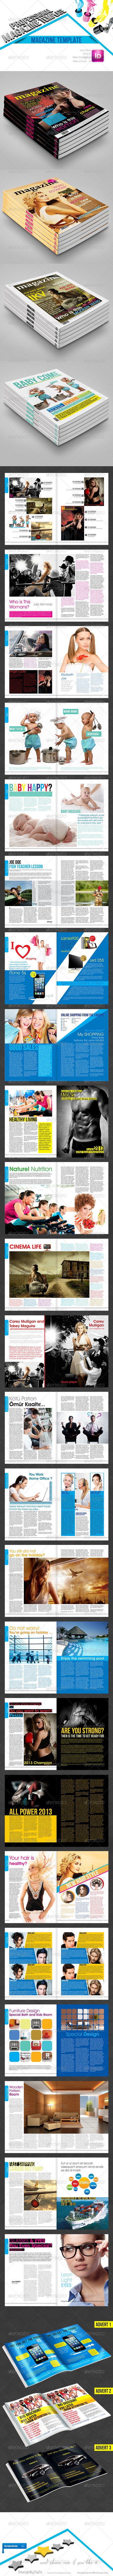 Magazine 50 Pages + 4 Covers Template - Magazines Print Templates